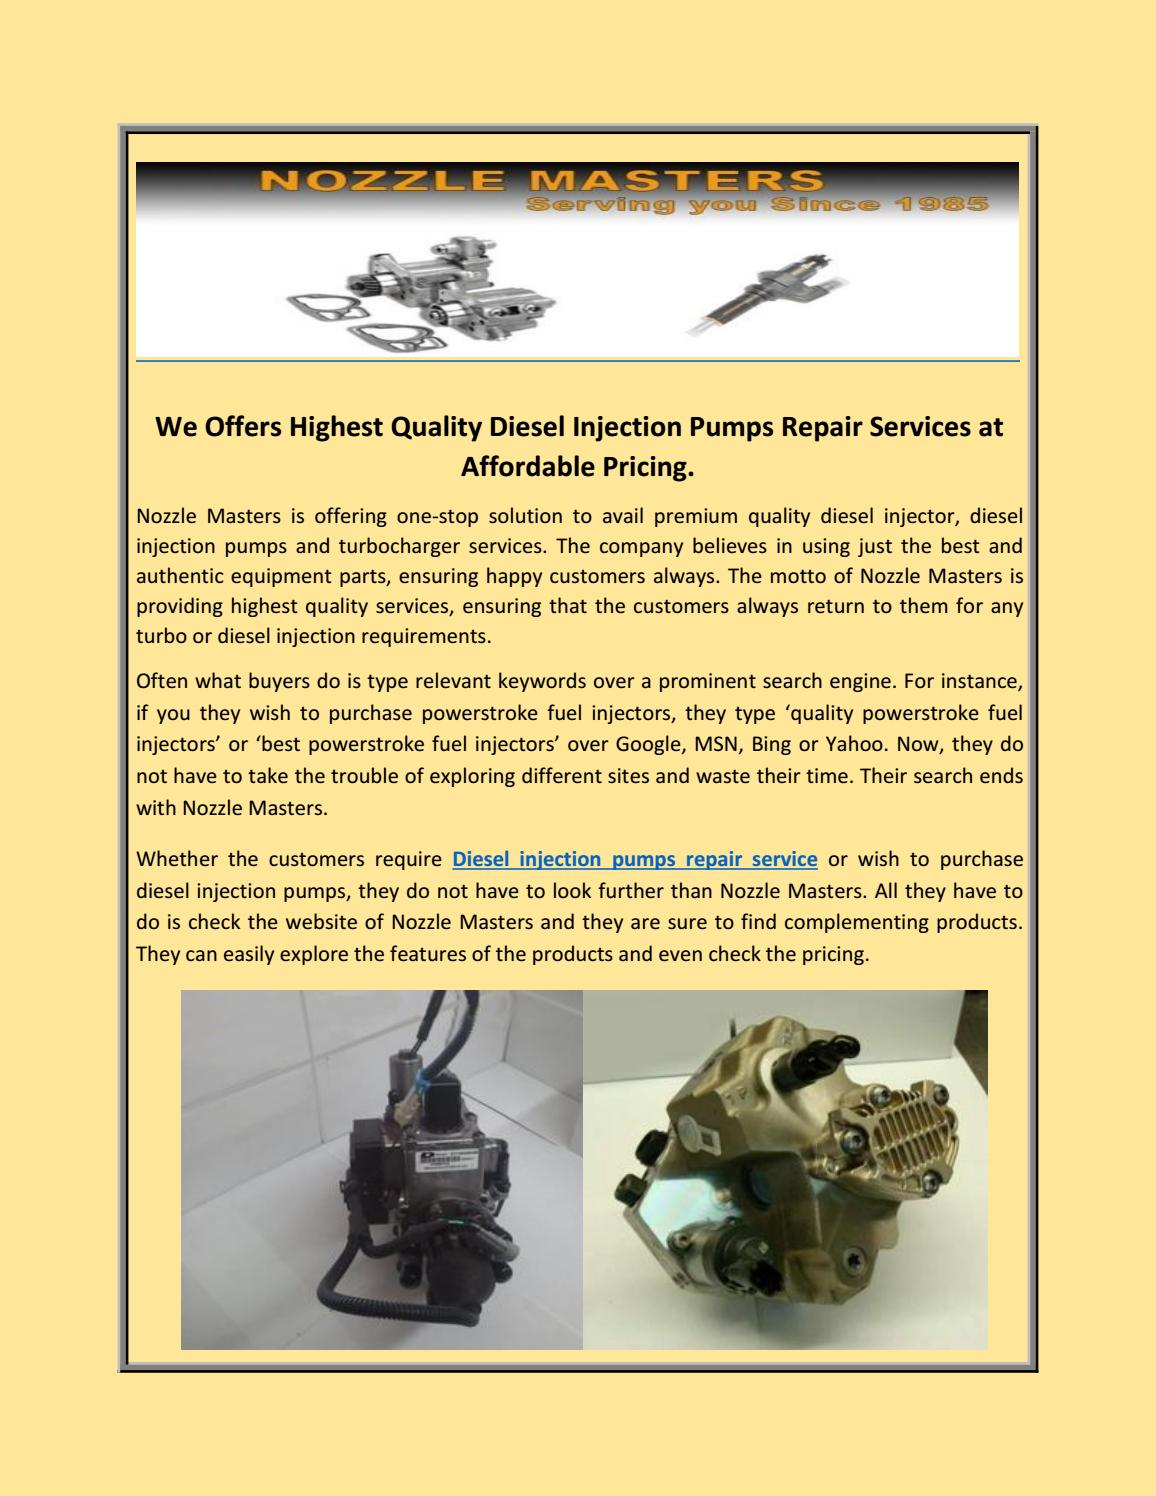 Diesel Injection Pumps Repair Services at Affordable Pricing by